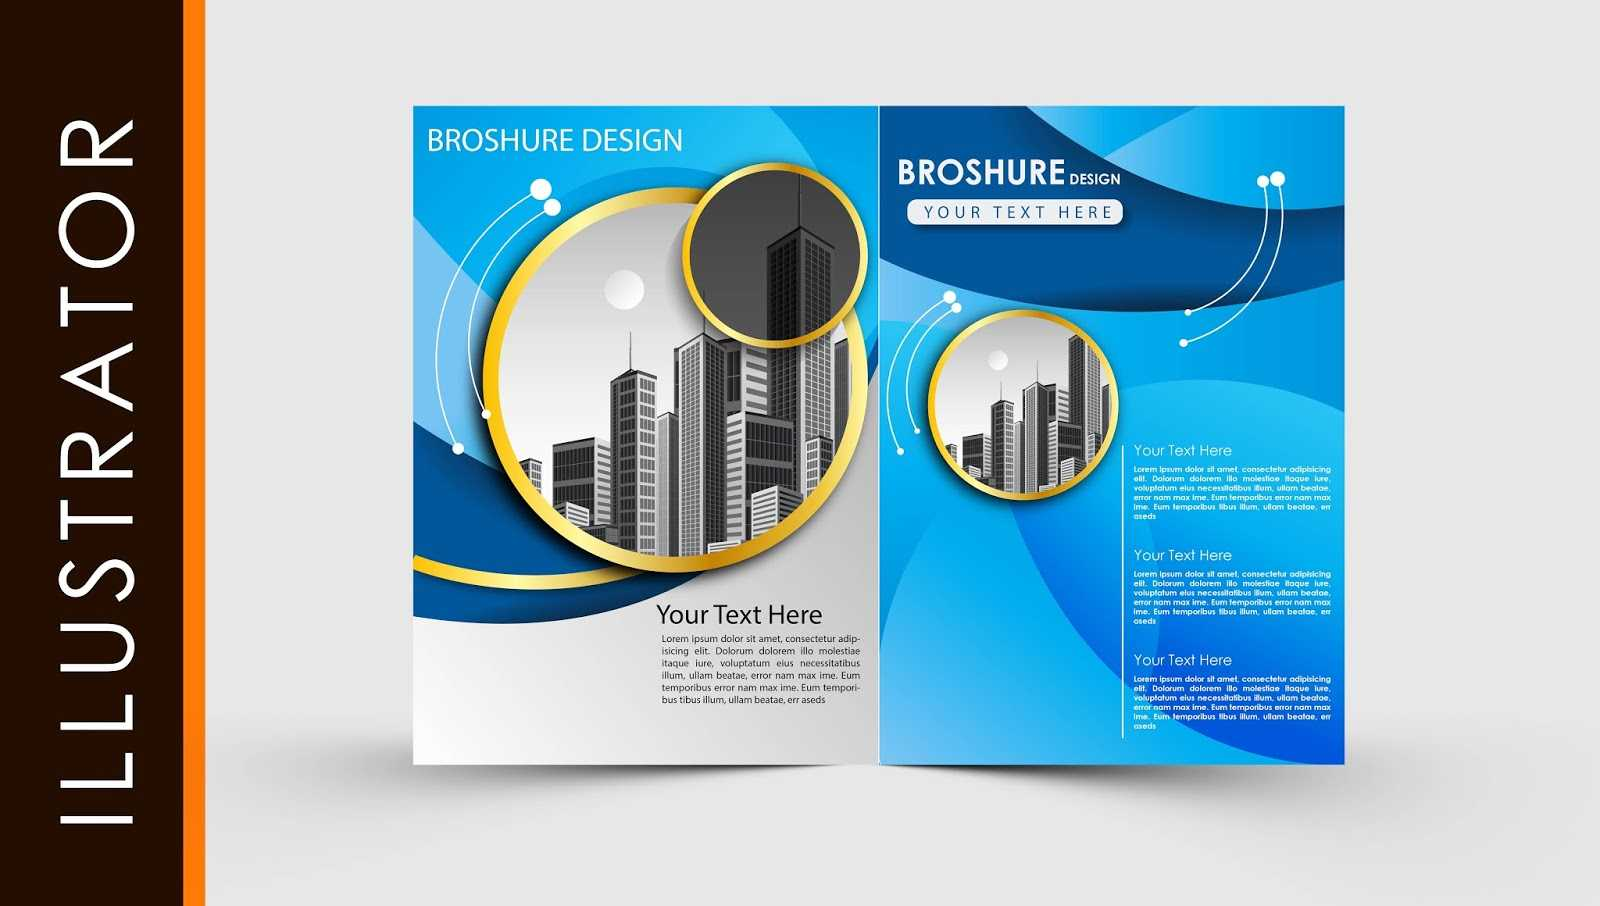 Free Download Adobe Illustrator Template Brochure Two Fold In Adobe Illustrator Brochure Templates Free Download